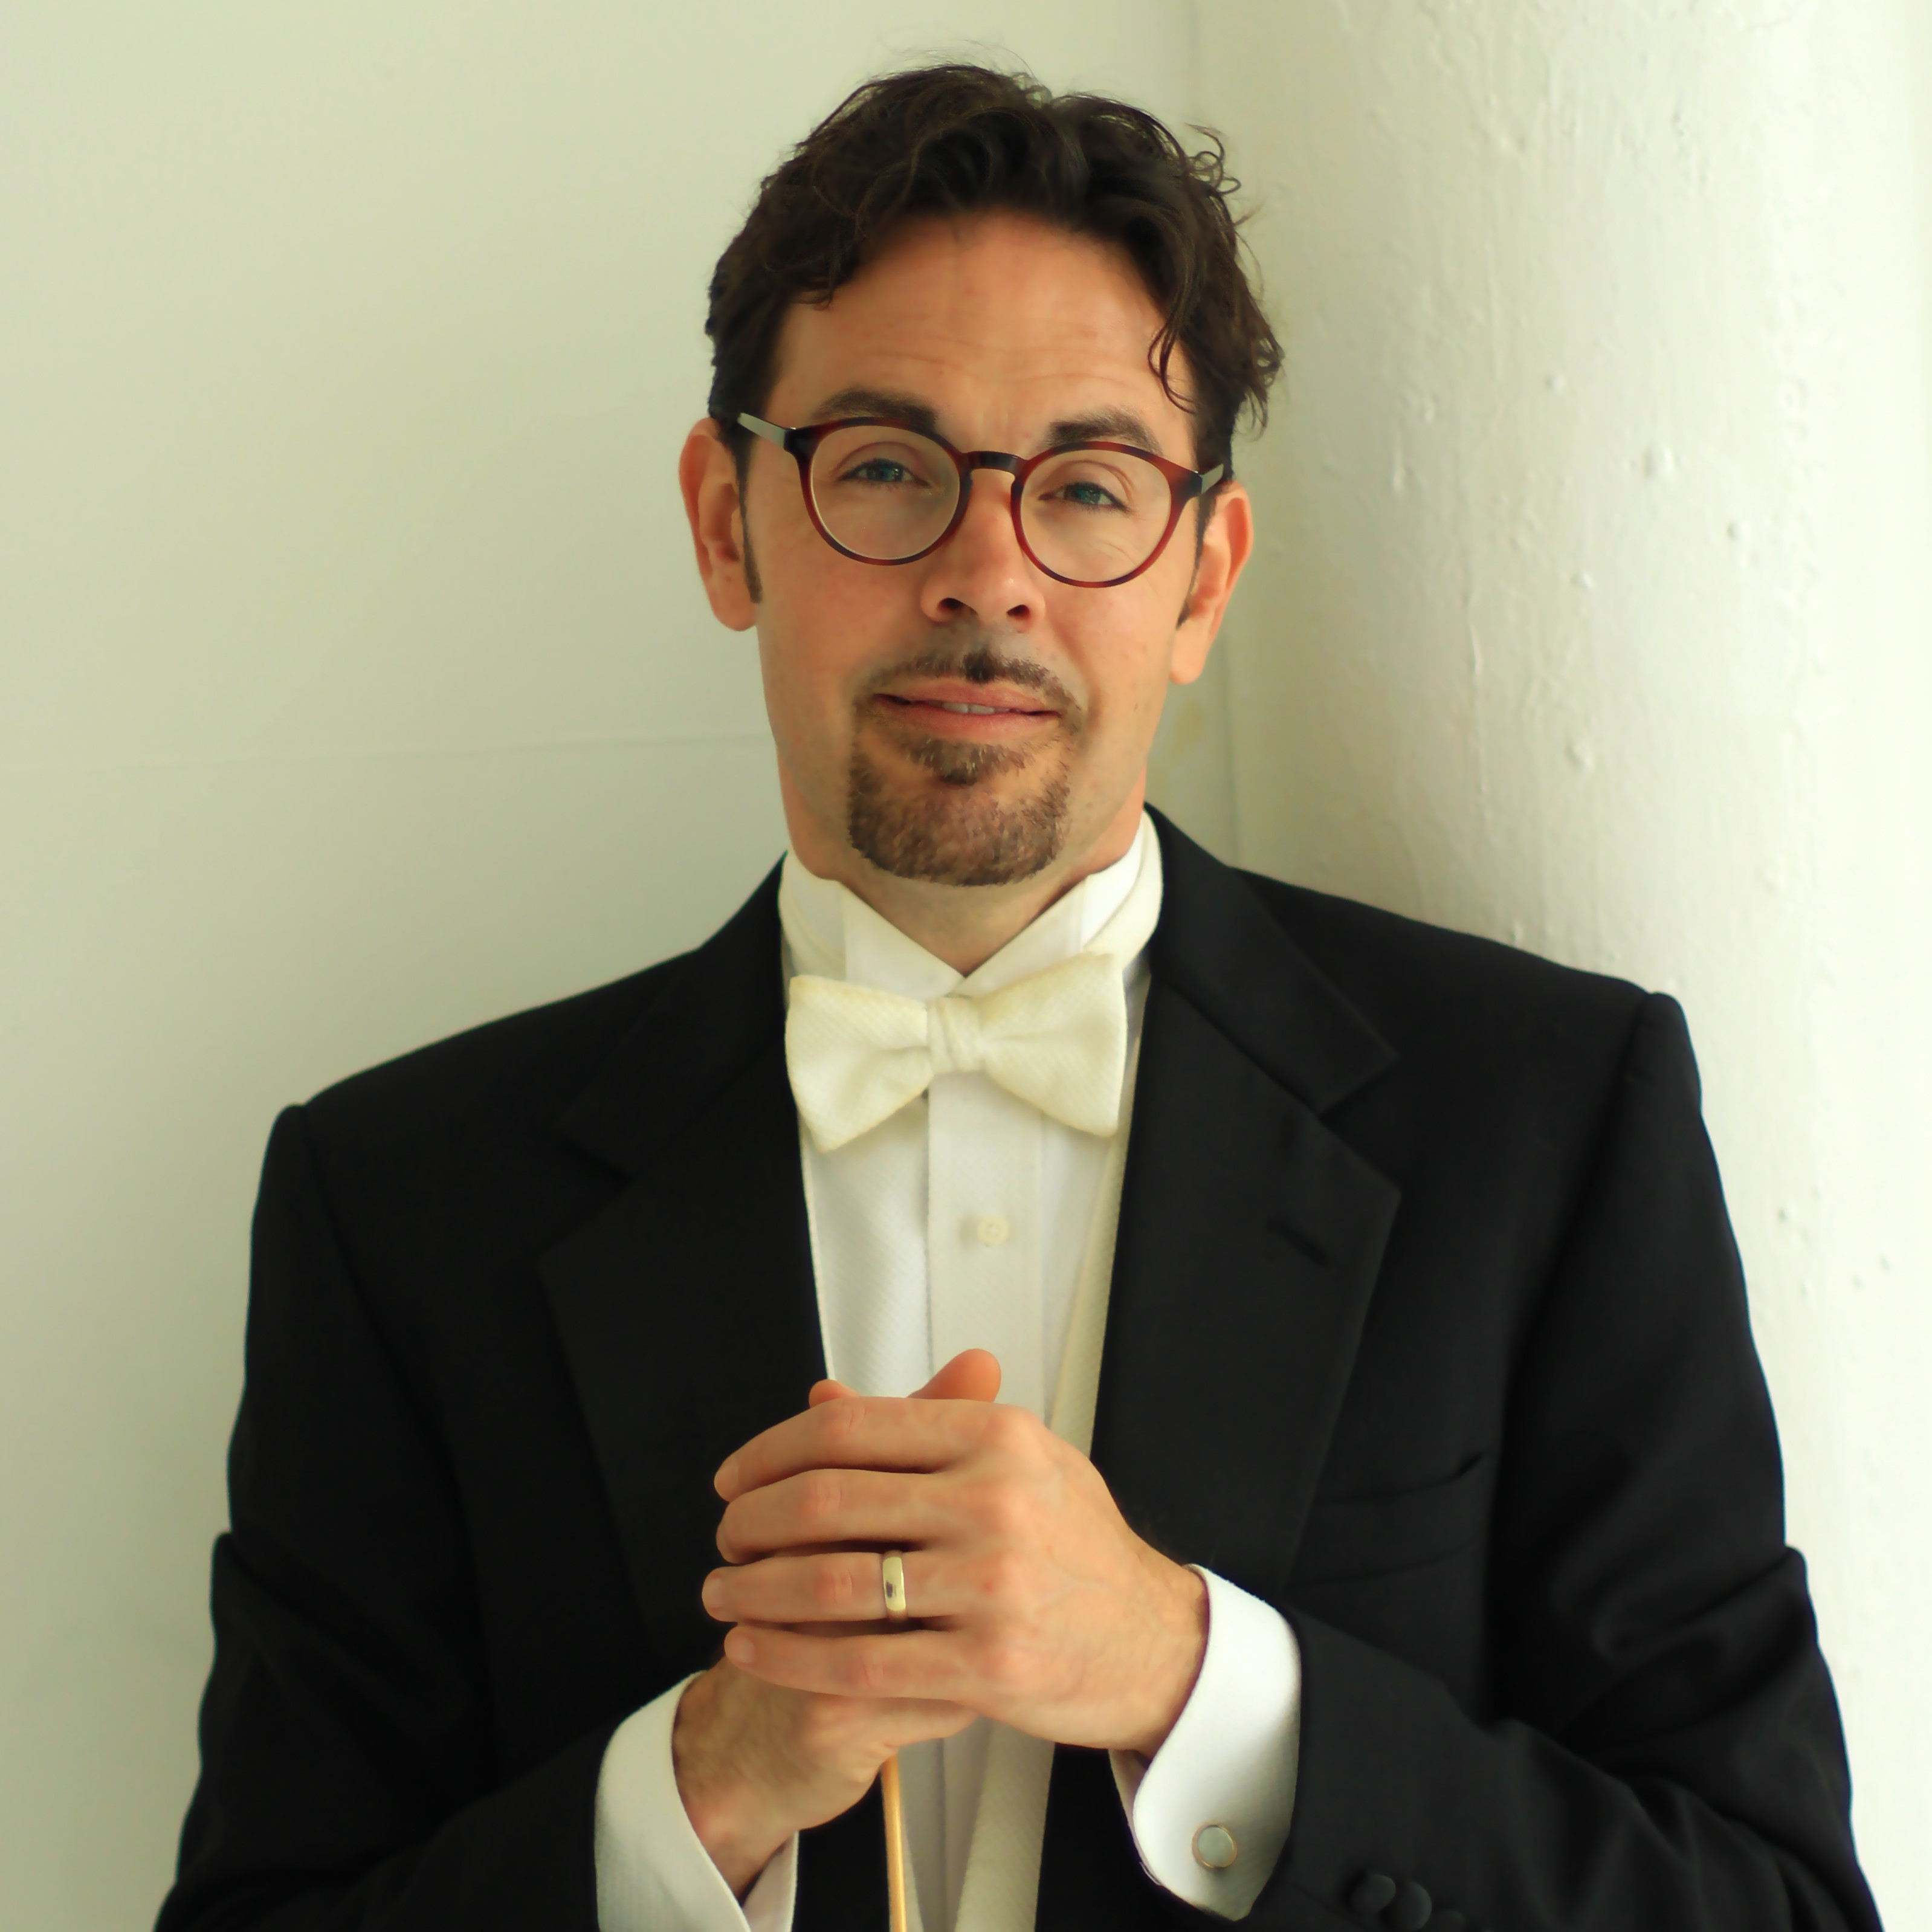 Michael John Trotta, composer, conductor - Formal Headshot